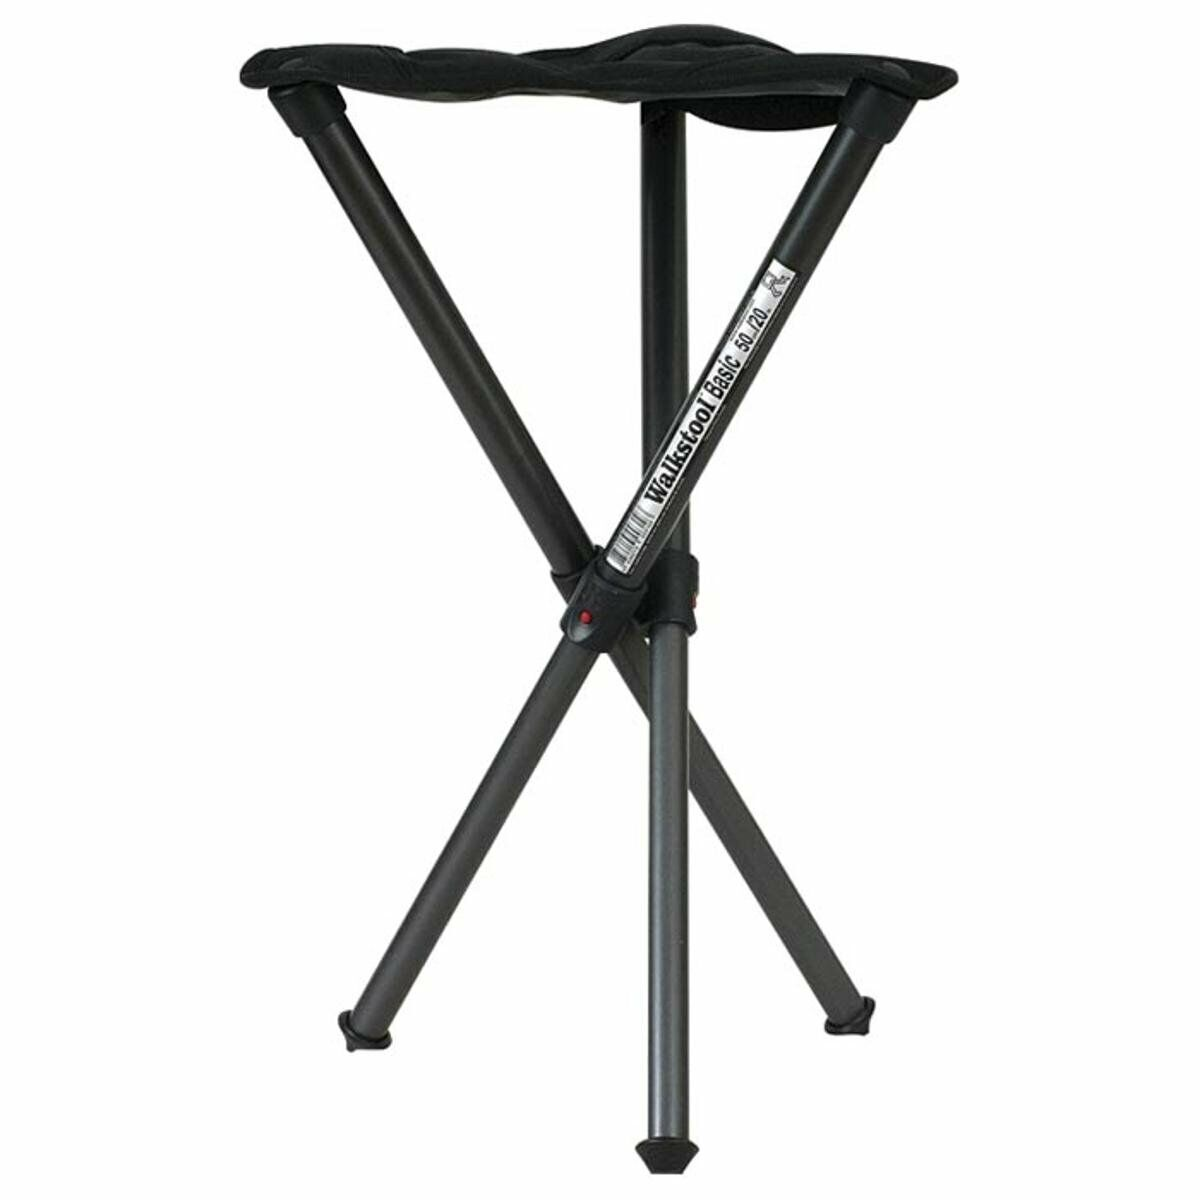 Walkstool Basic Camping Stool  50cm  20in  save up to 30-50% off